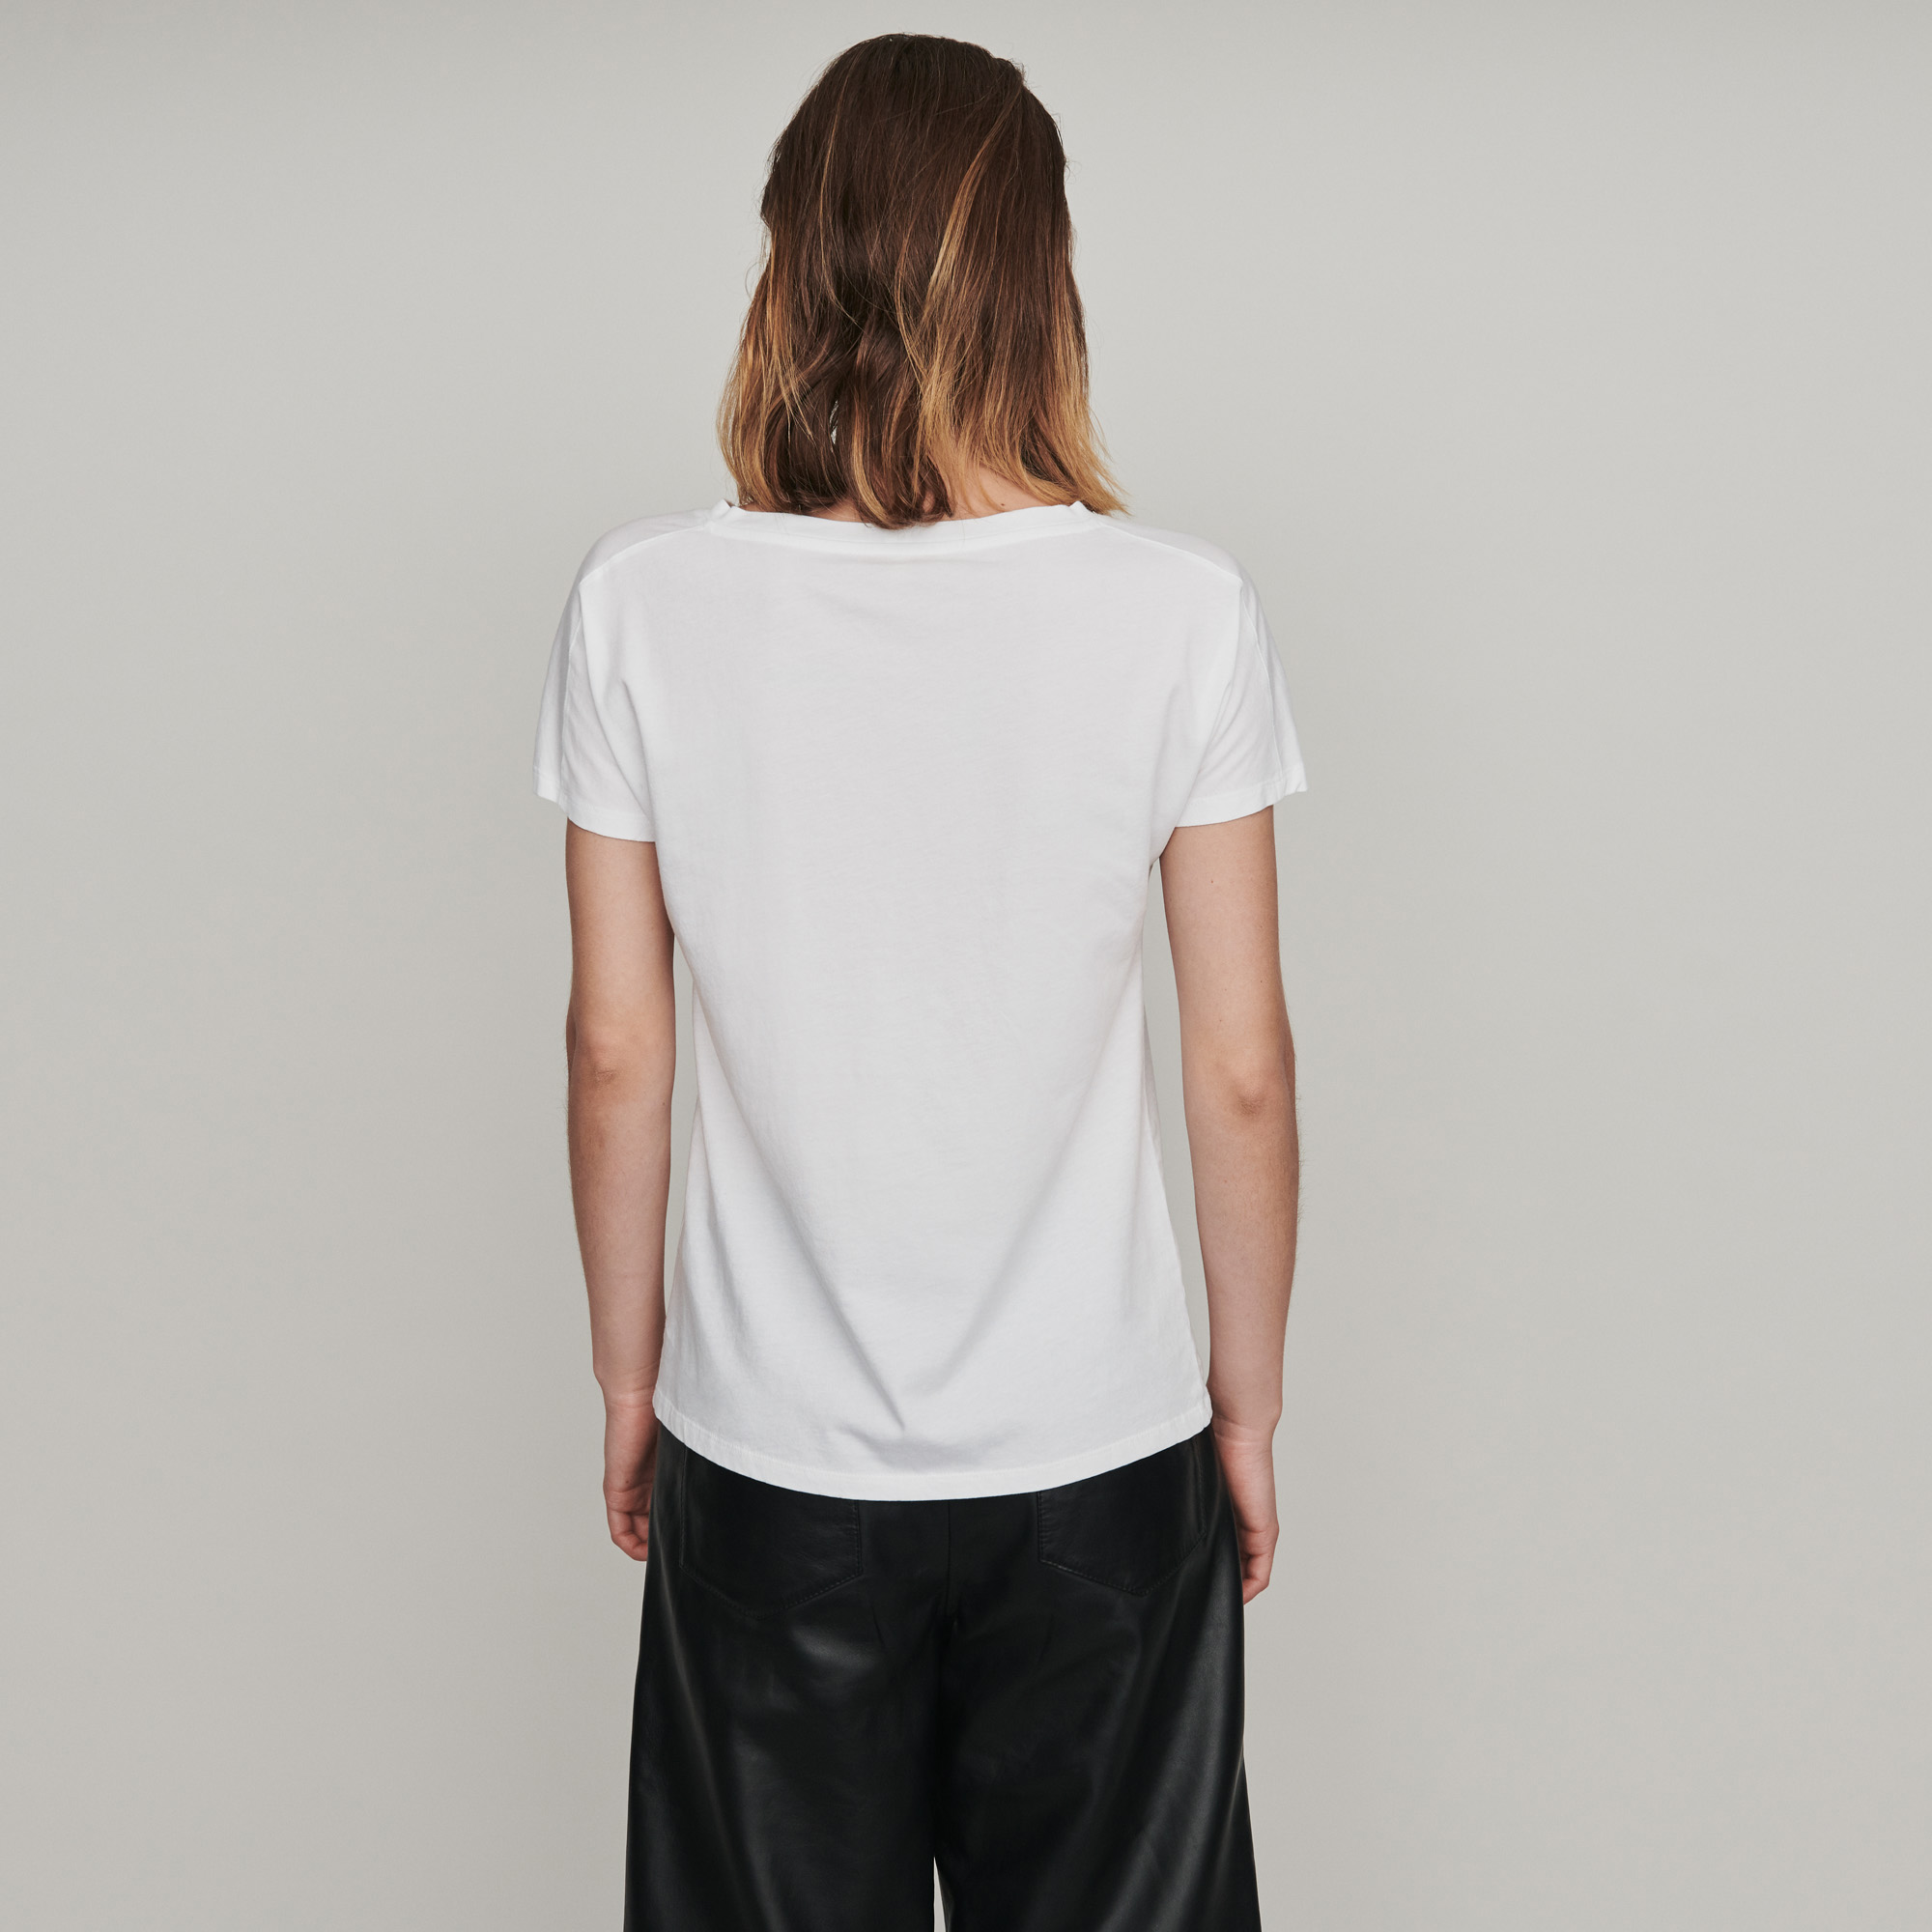 M embroidered jersey tshirt - White